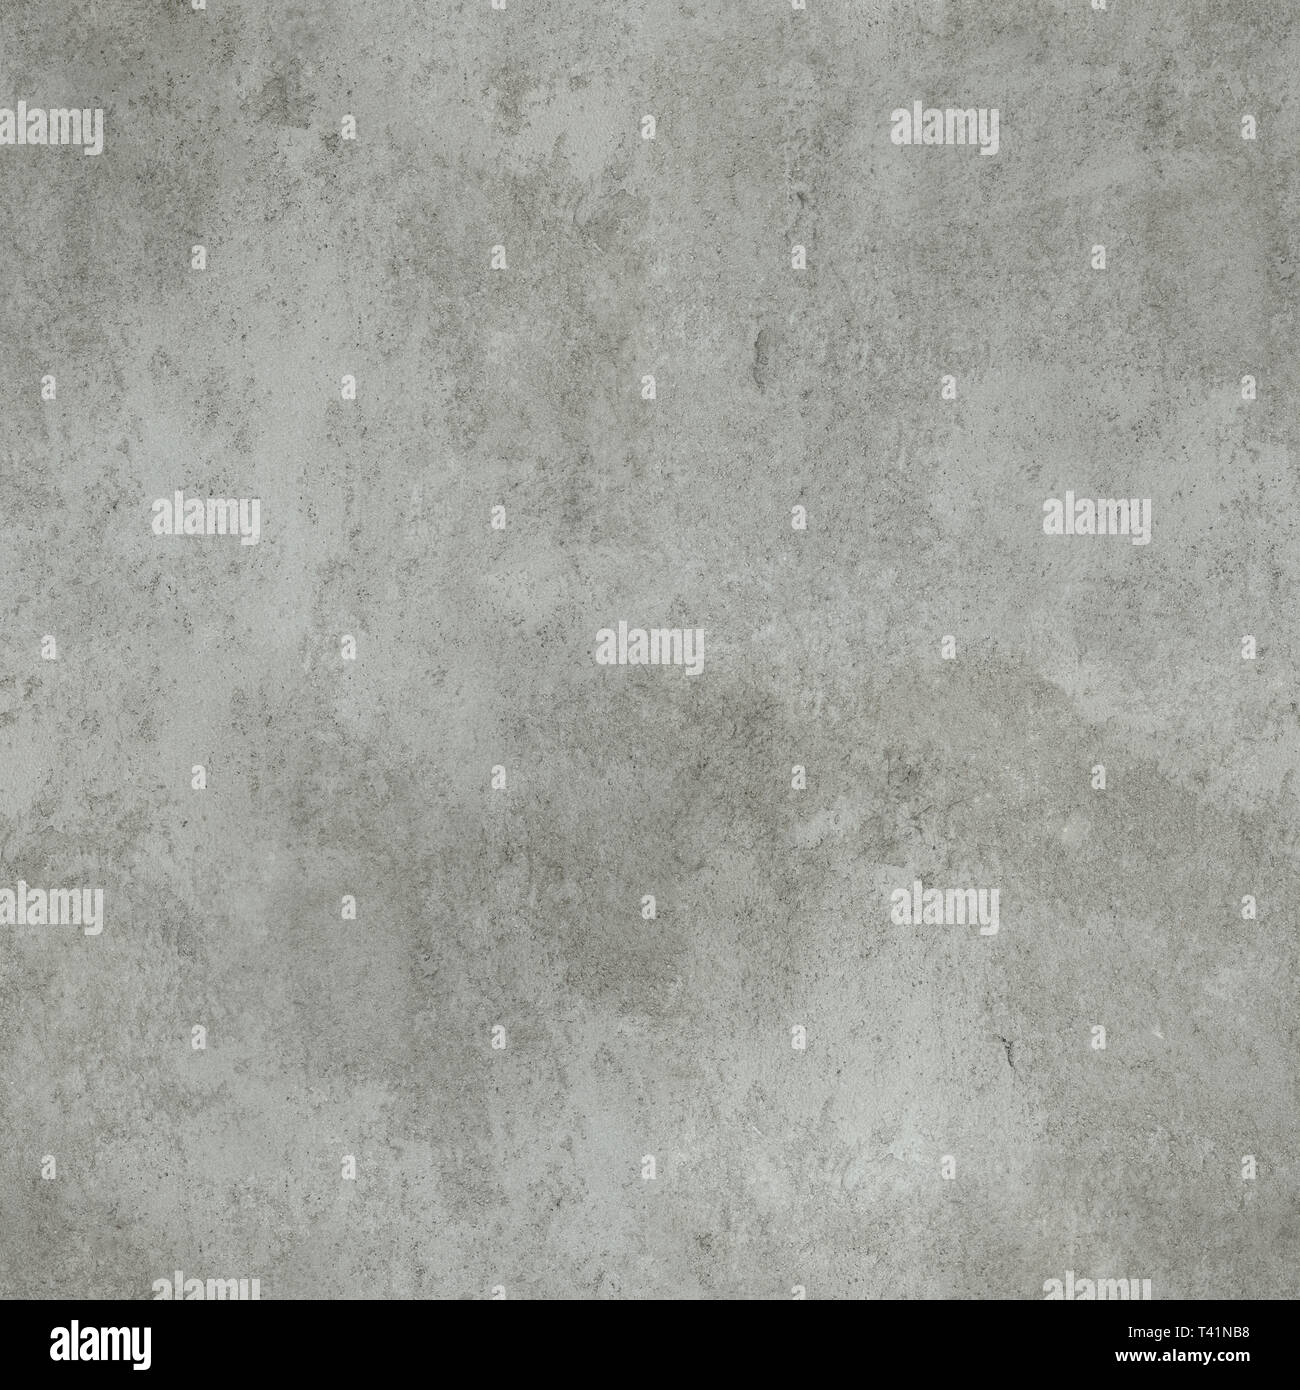 Seamless texture of concrete grunge wall pattern in 6k resolution - Stock Image